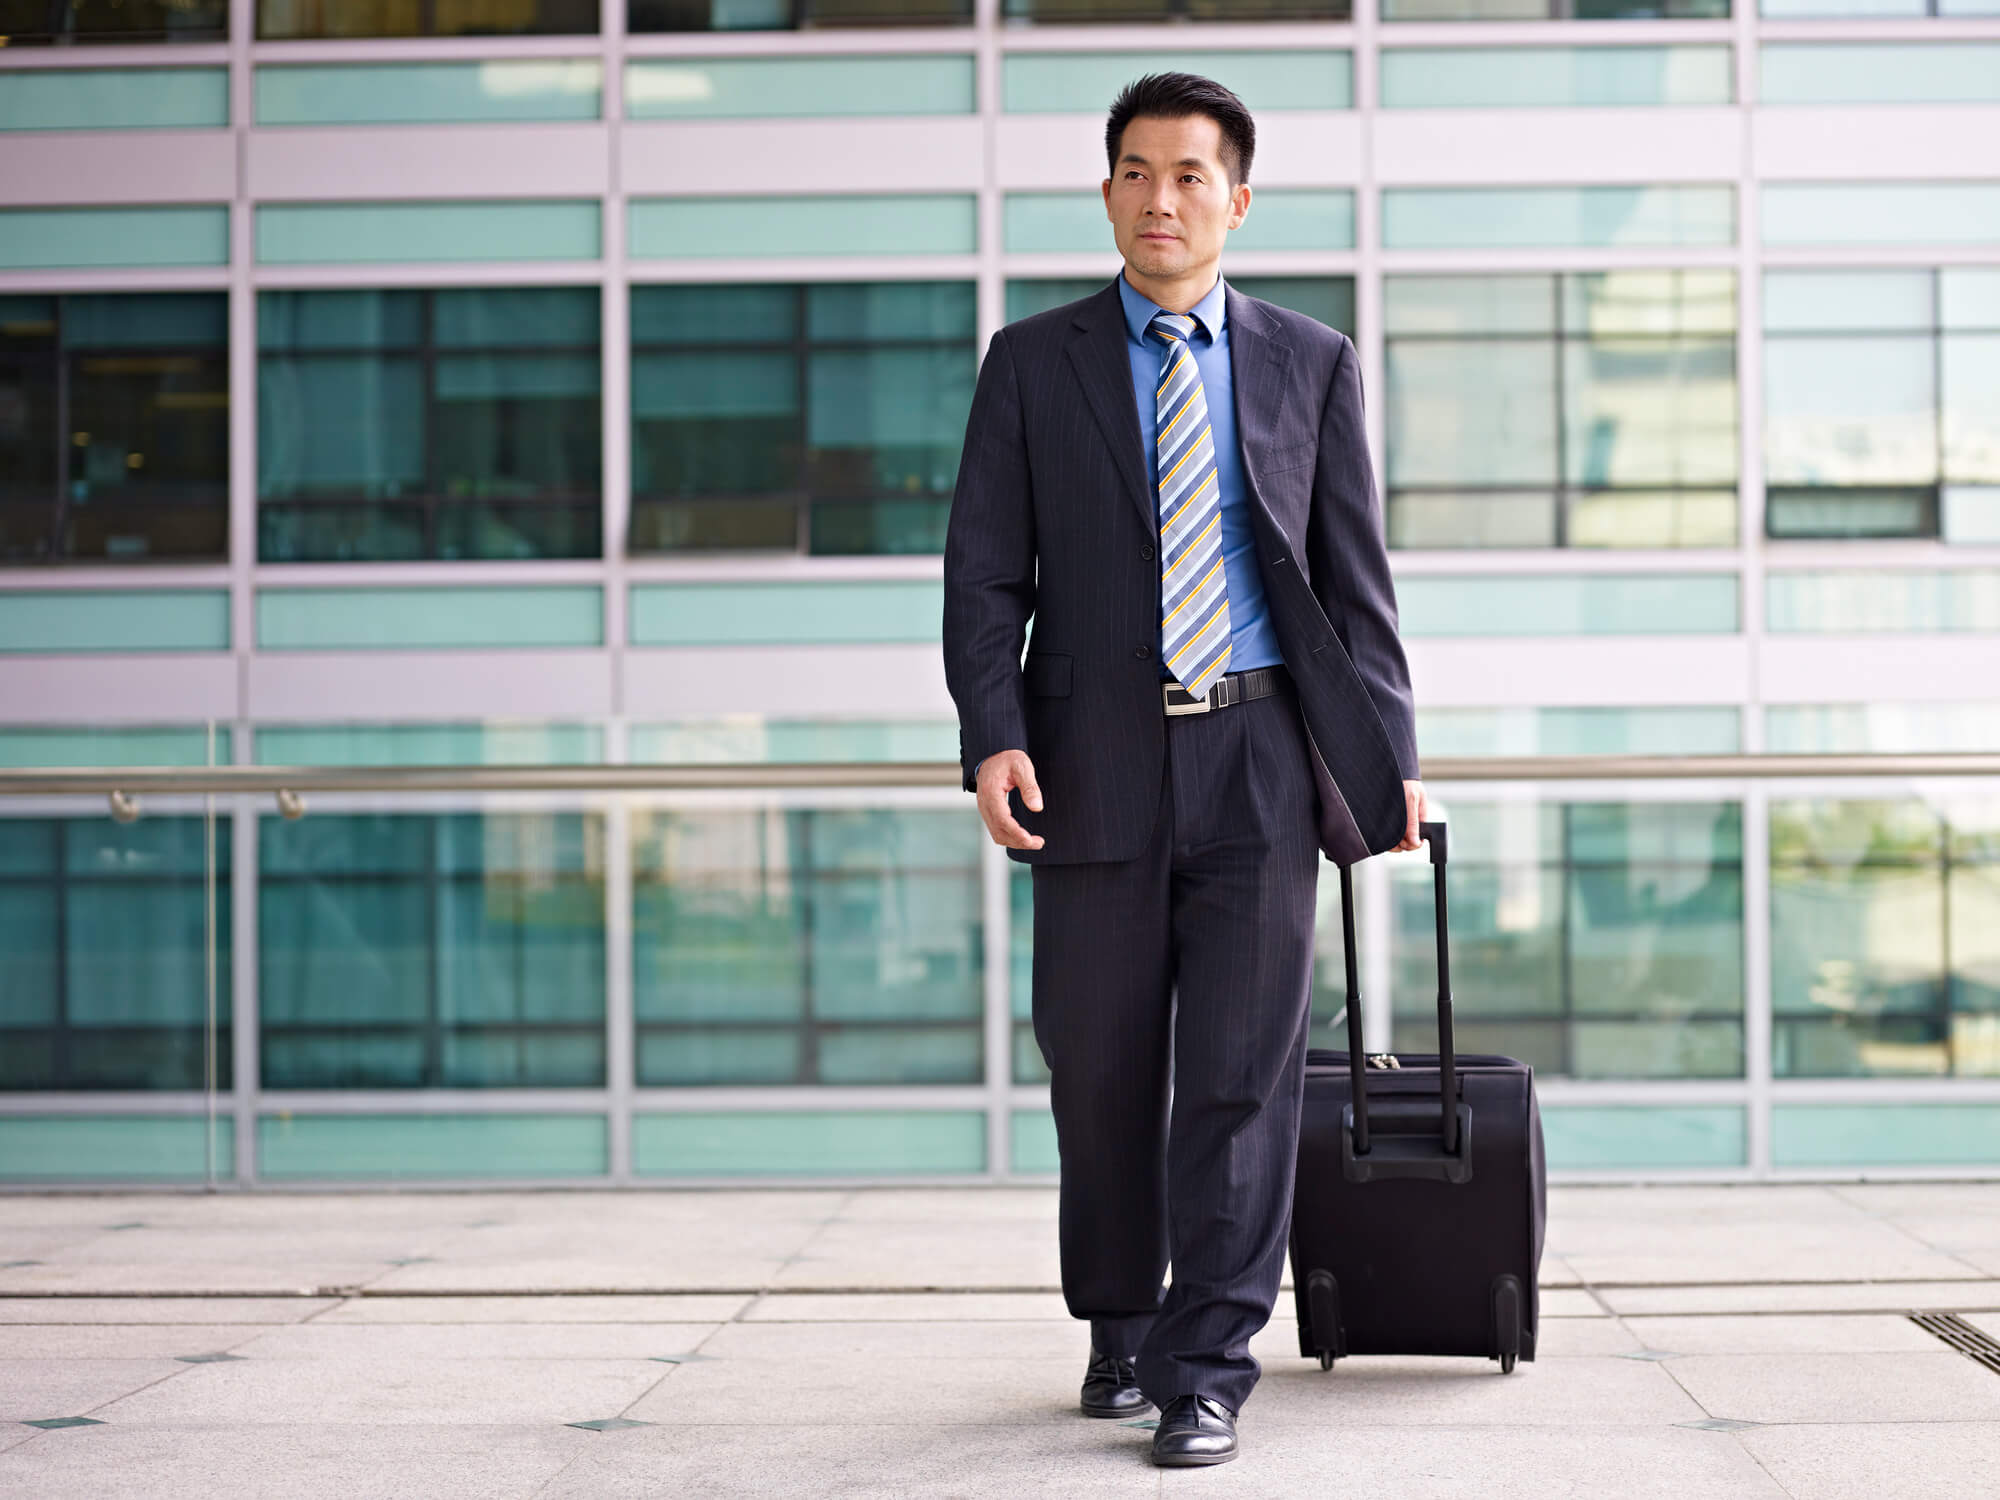 Business Traveler Solution - Let Us Be Your Guide